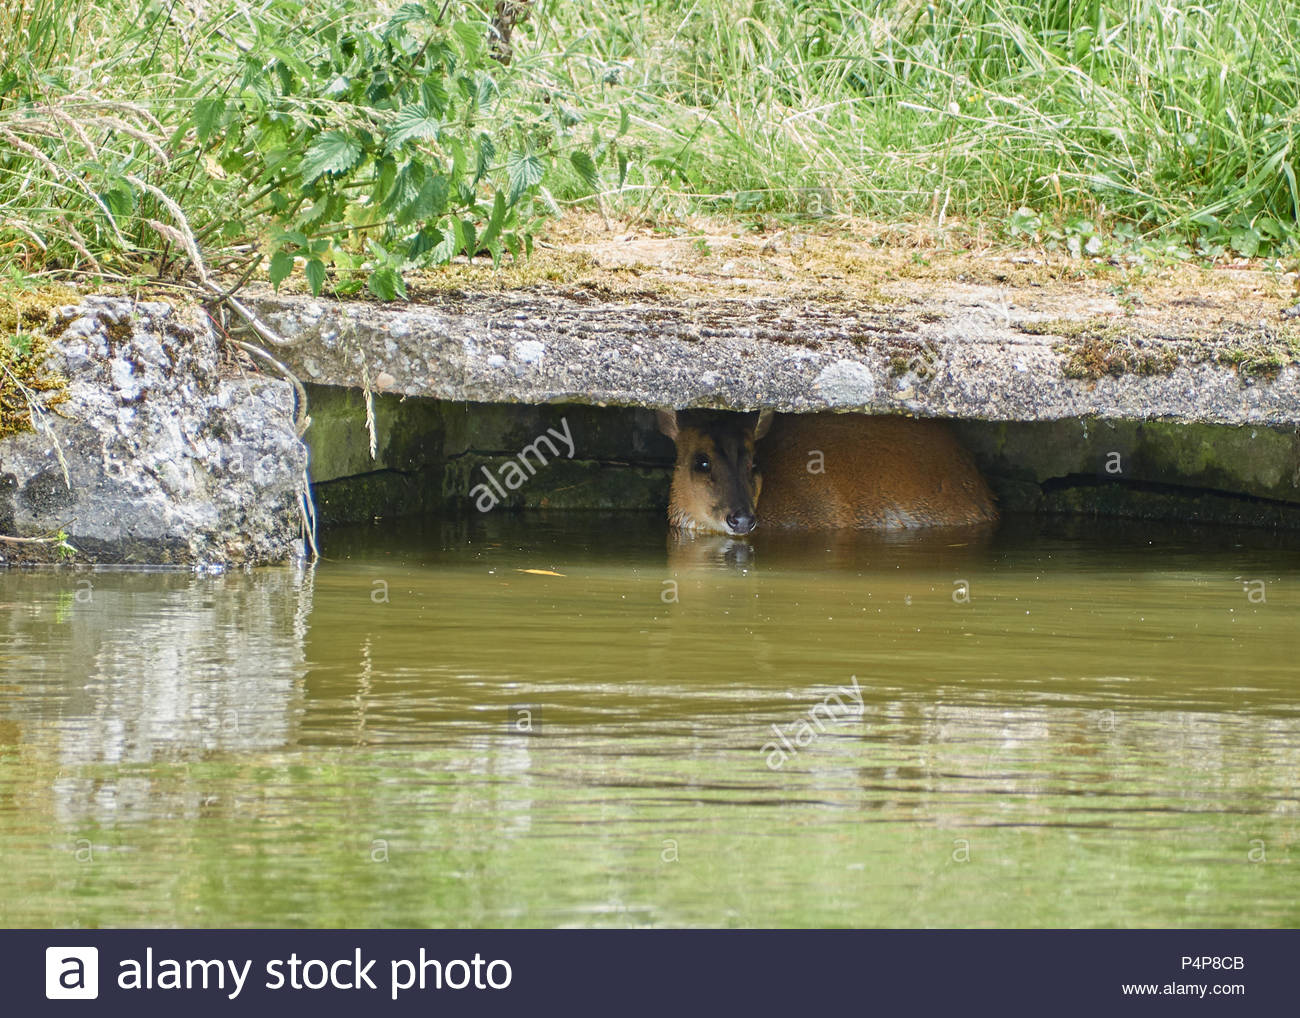 Muntjac deer sheltering in a culvert after havign fallen in to the Grand Union Canal - Stock Image